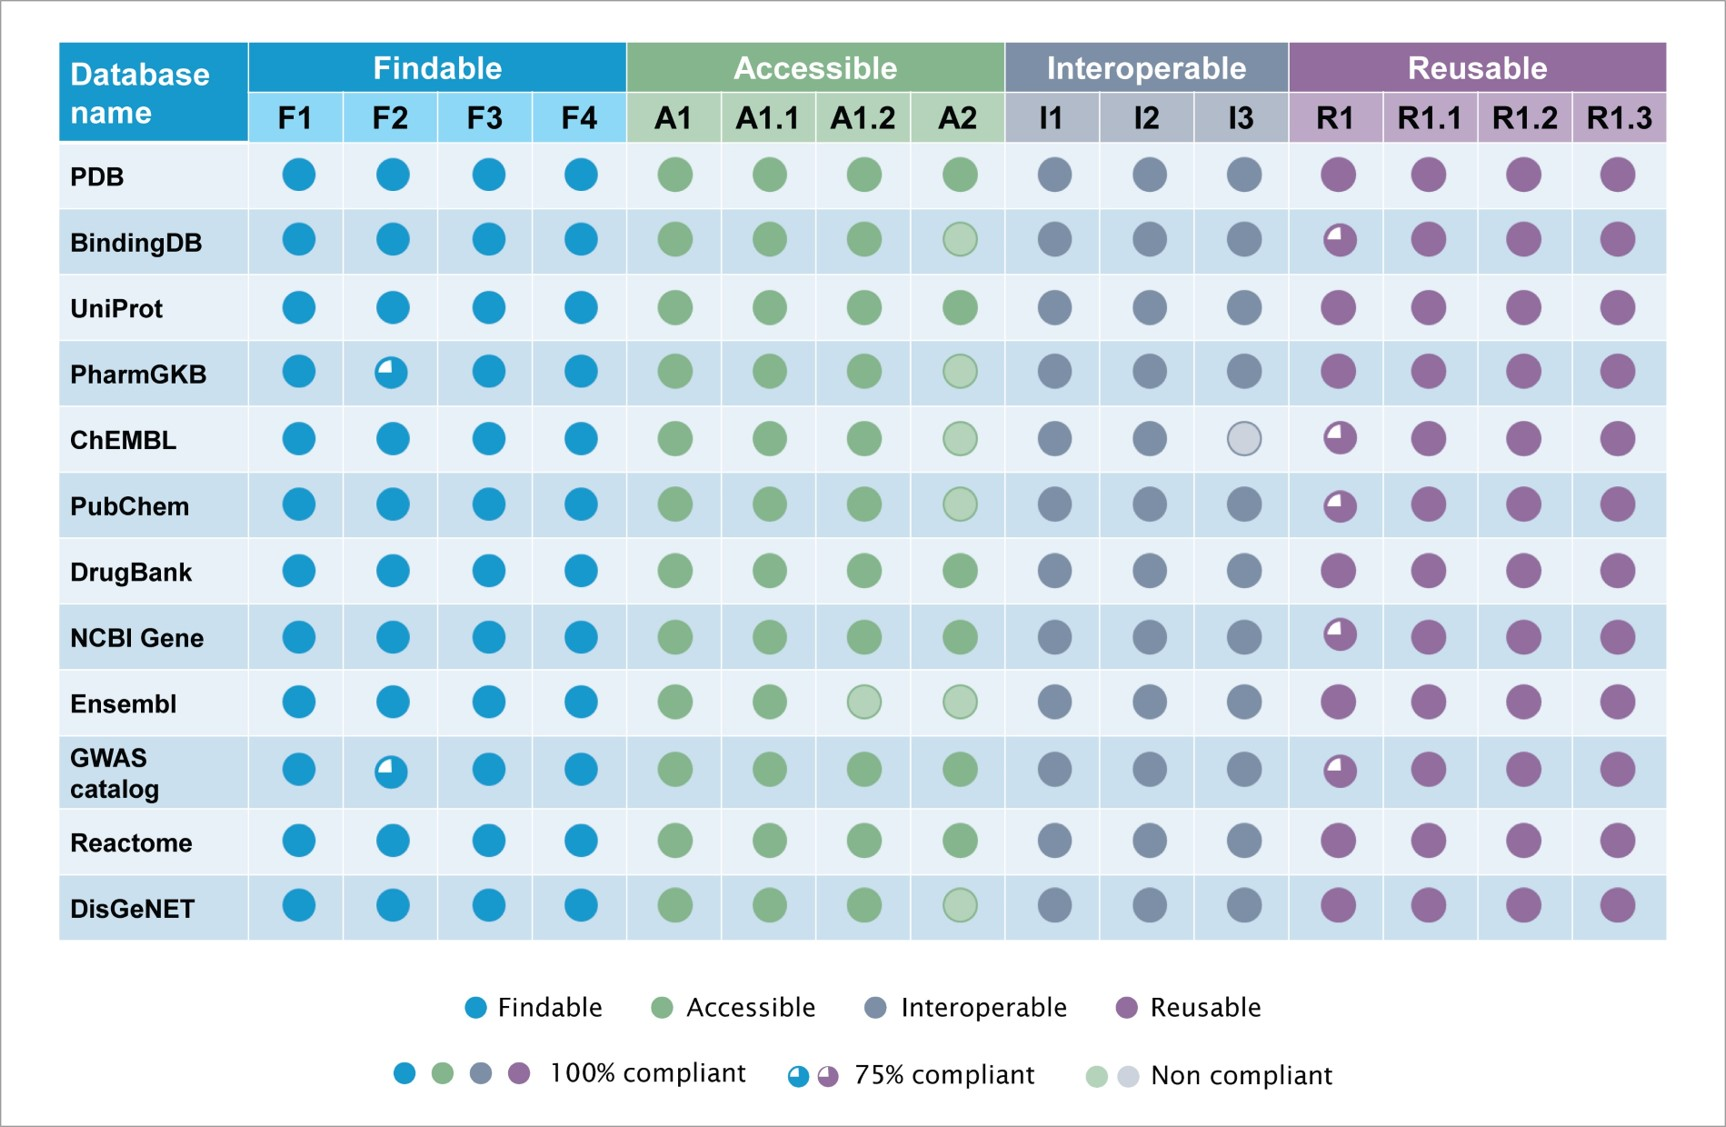 Summary of the quantitative assessment of 12 public databases for FAIR compliance-1